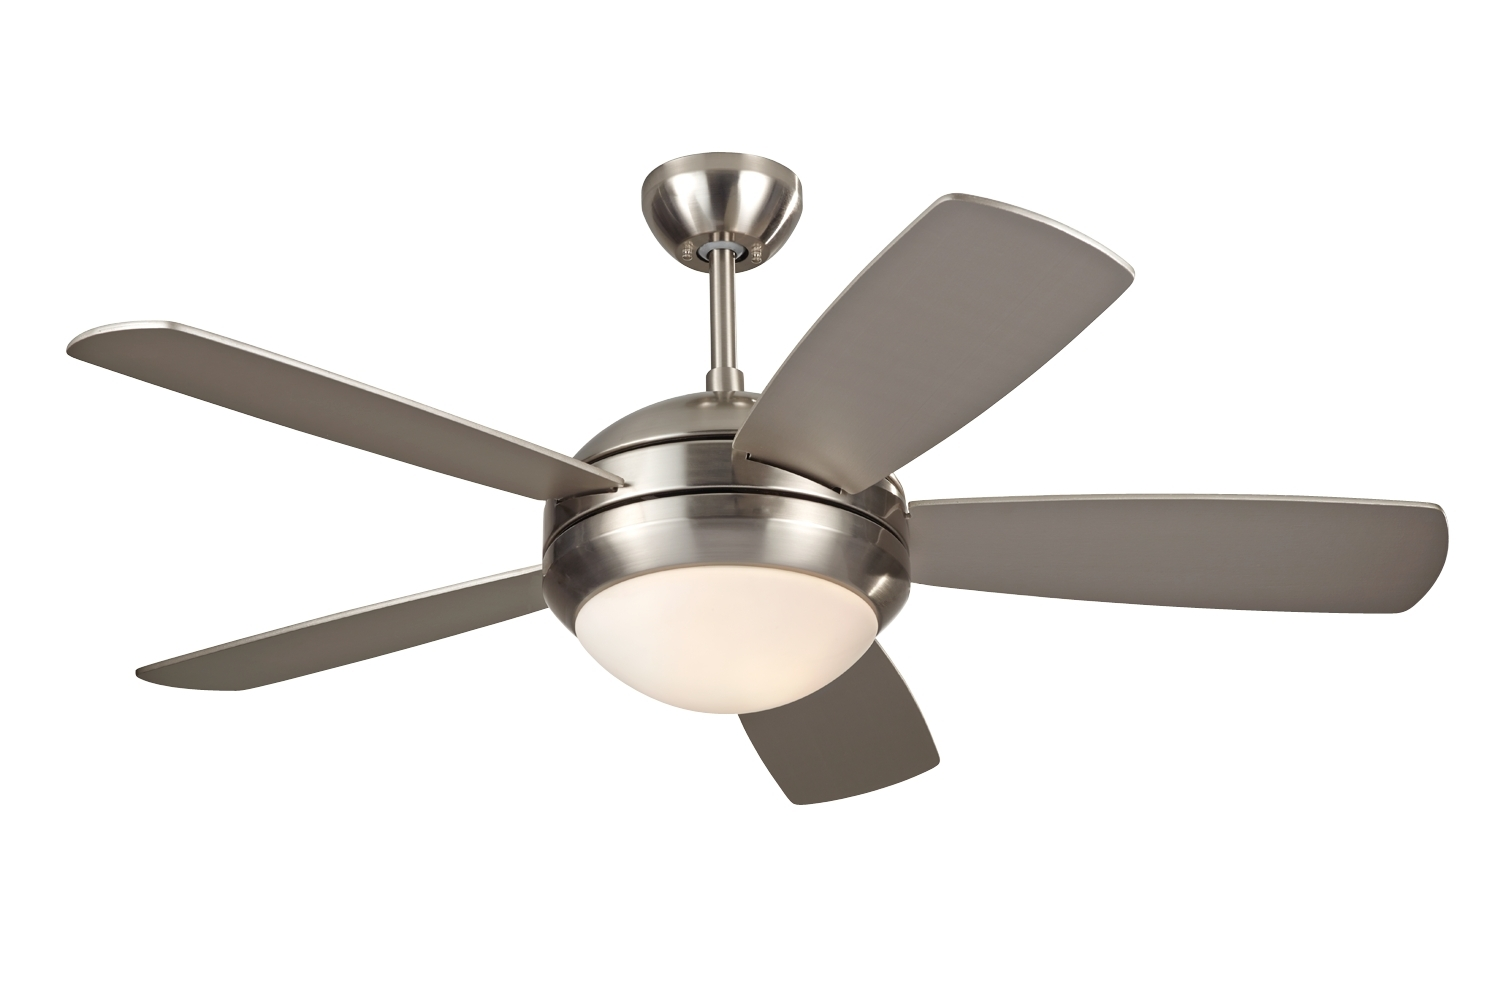 44 inch Ceiling Fan from the Discus II collection by Monte Carlo 5DI44BSD